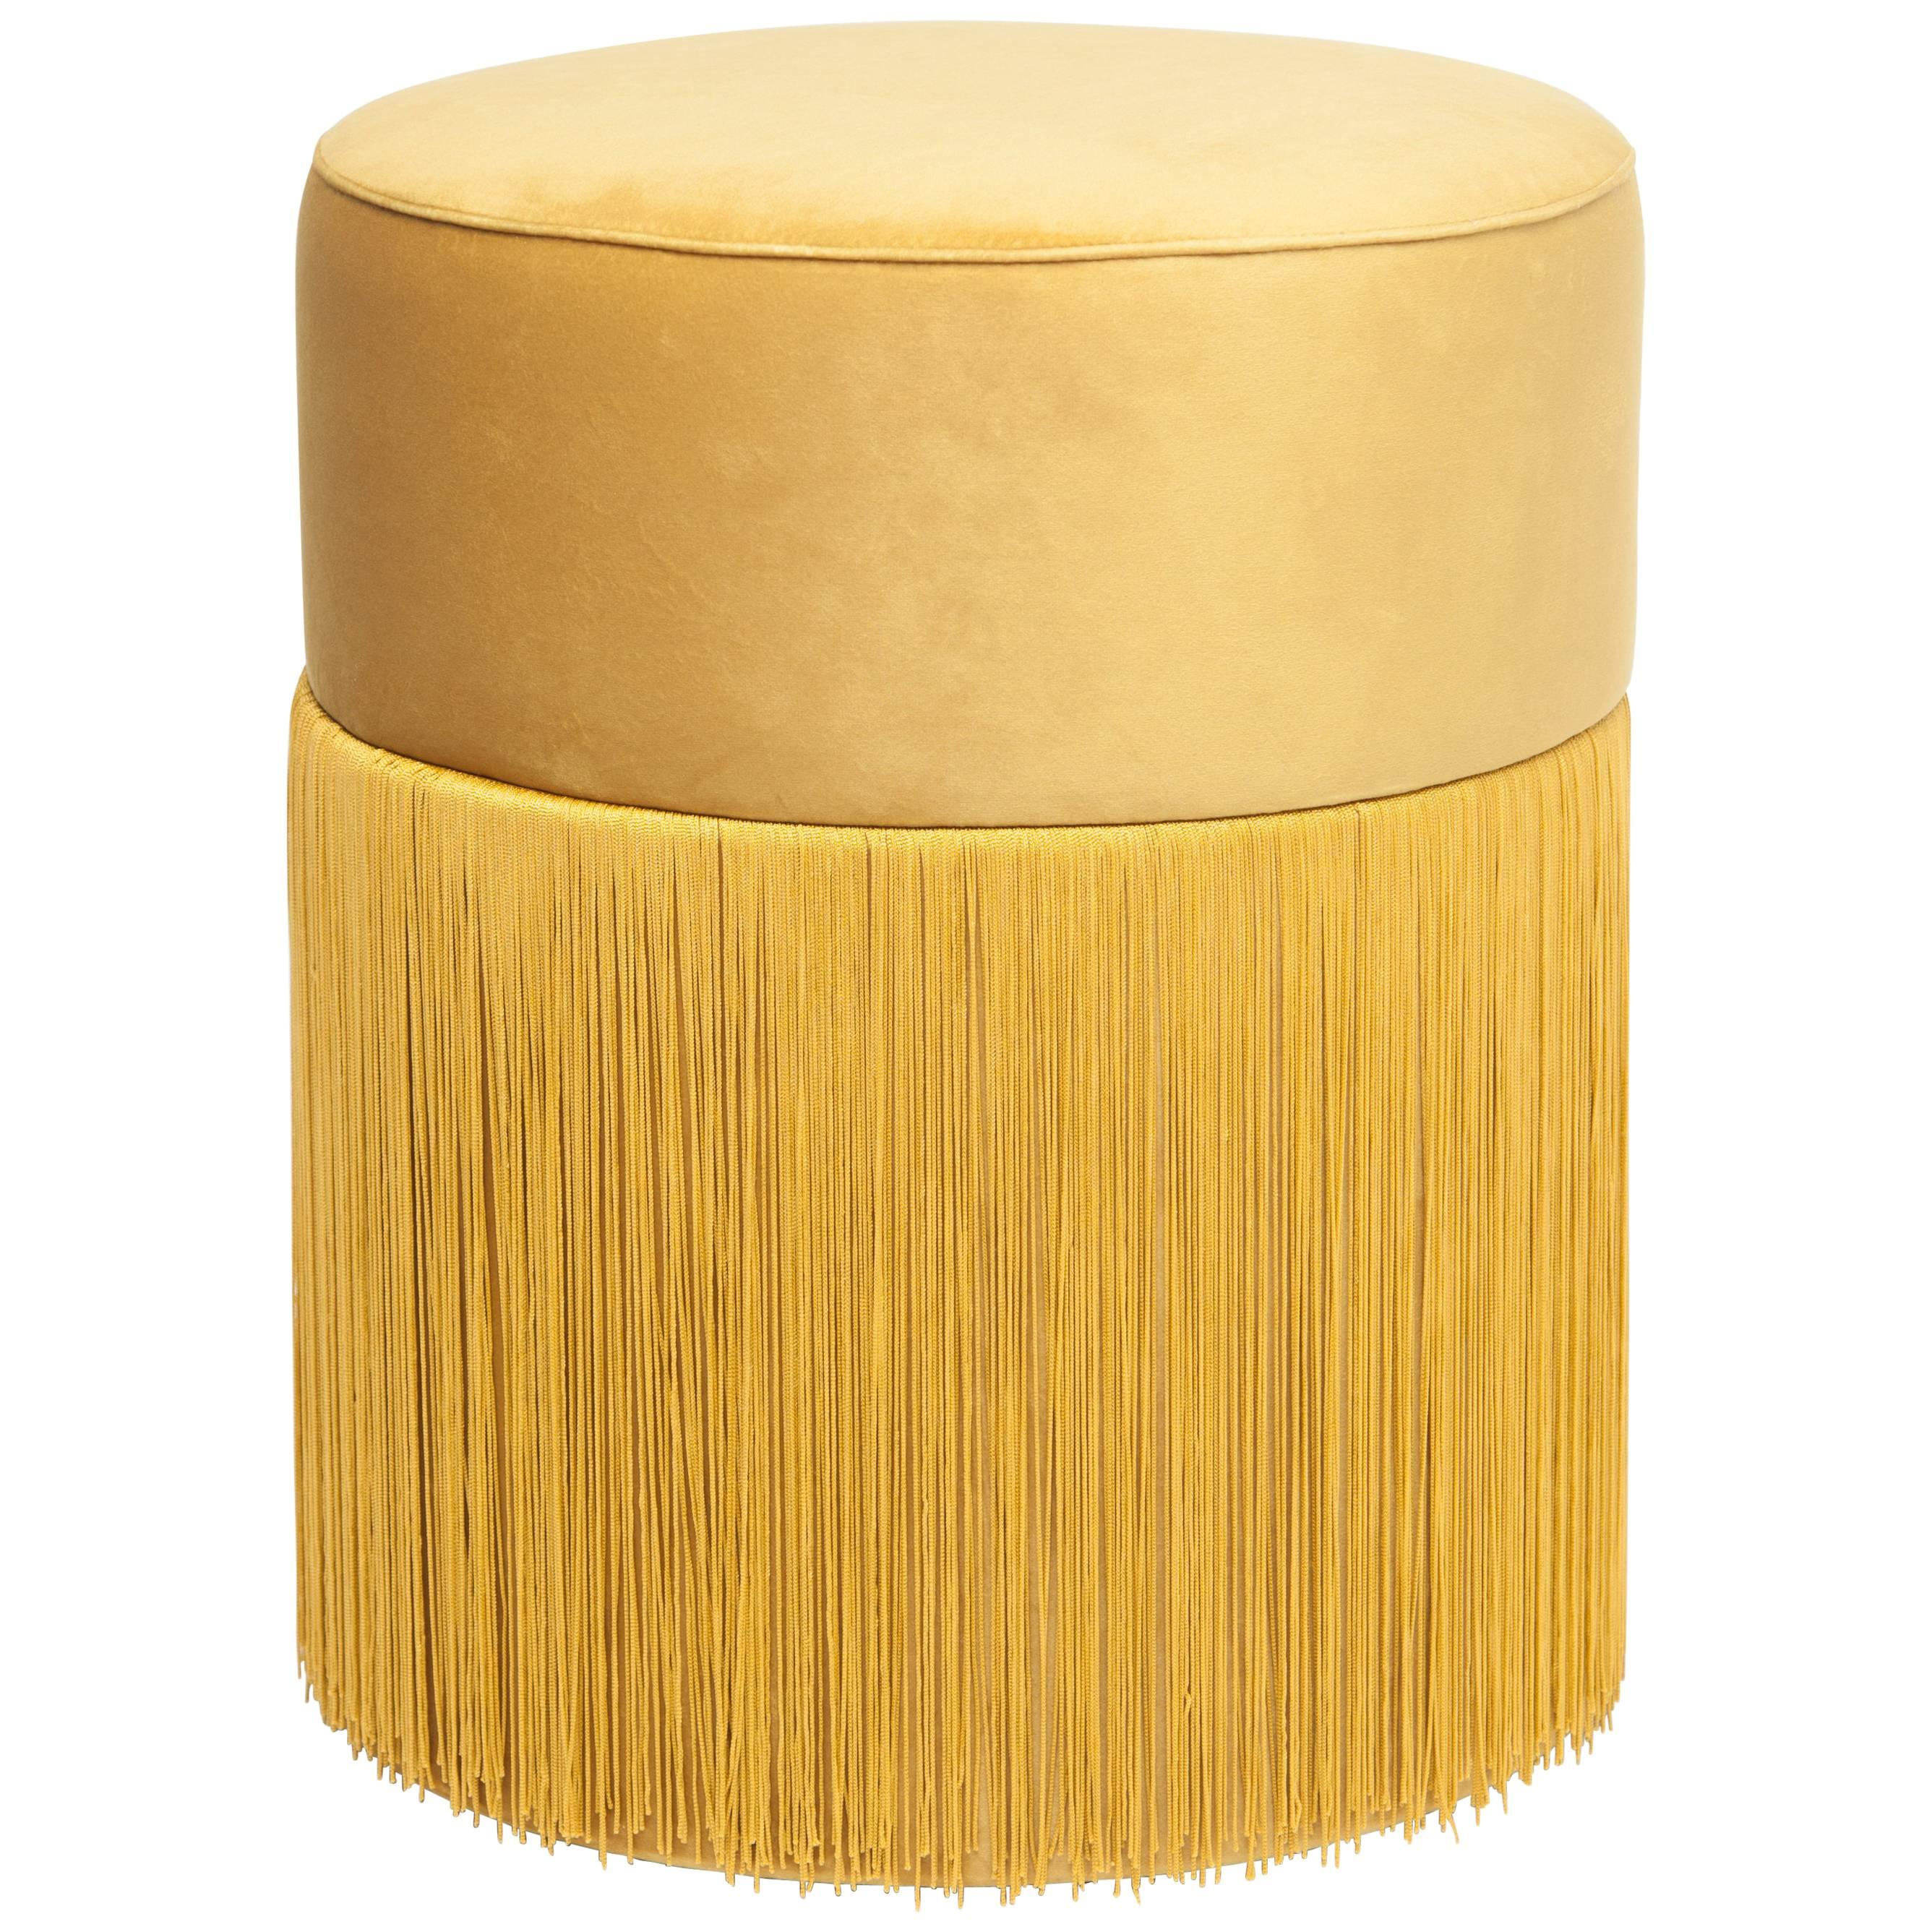 Pouf Pill Yellow in Velvet Upholstery with Fringes